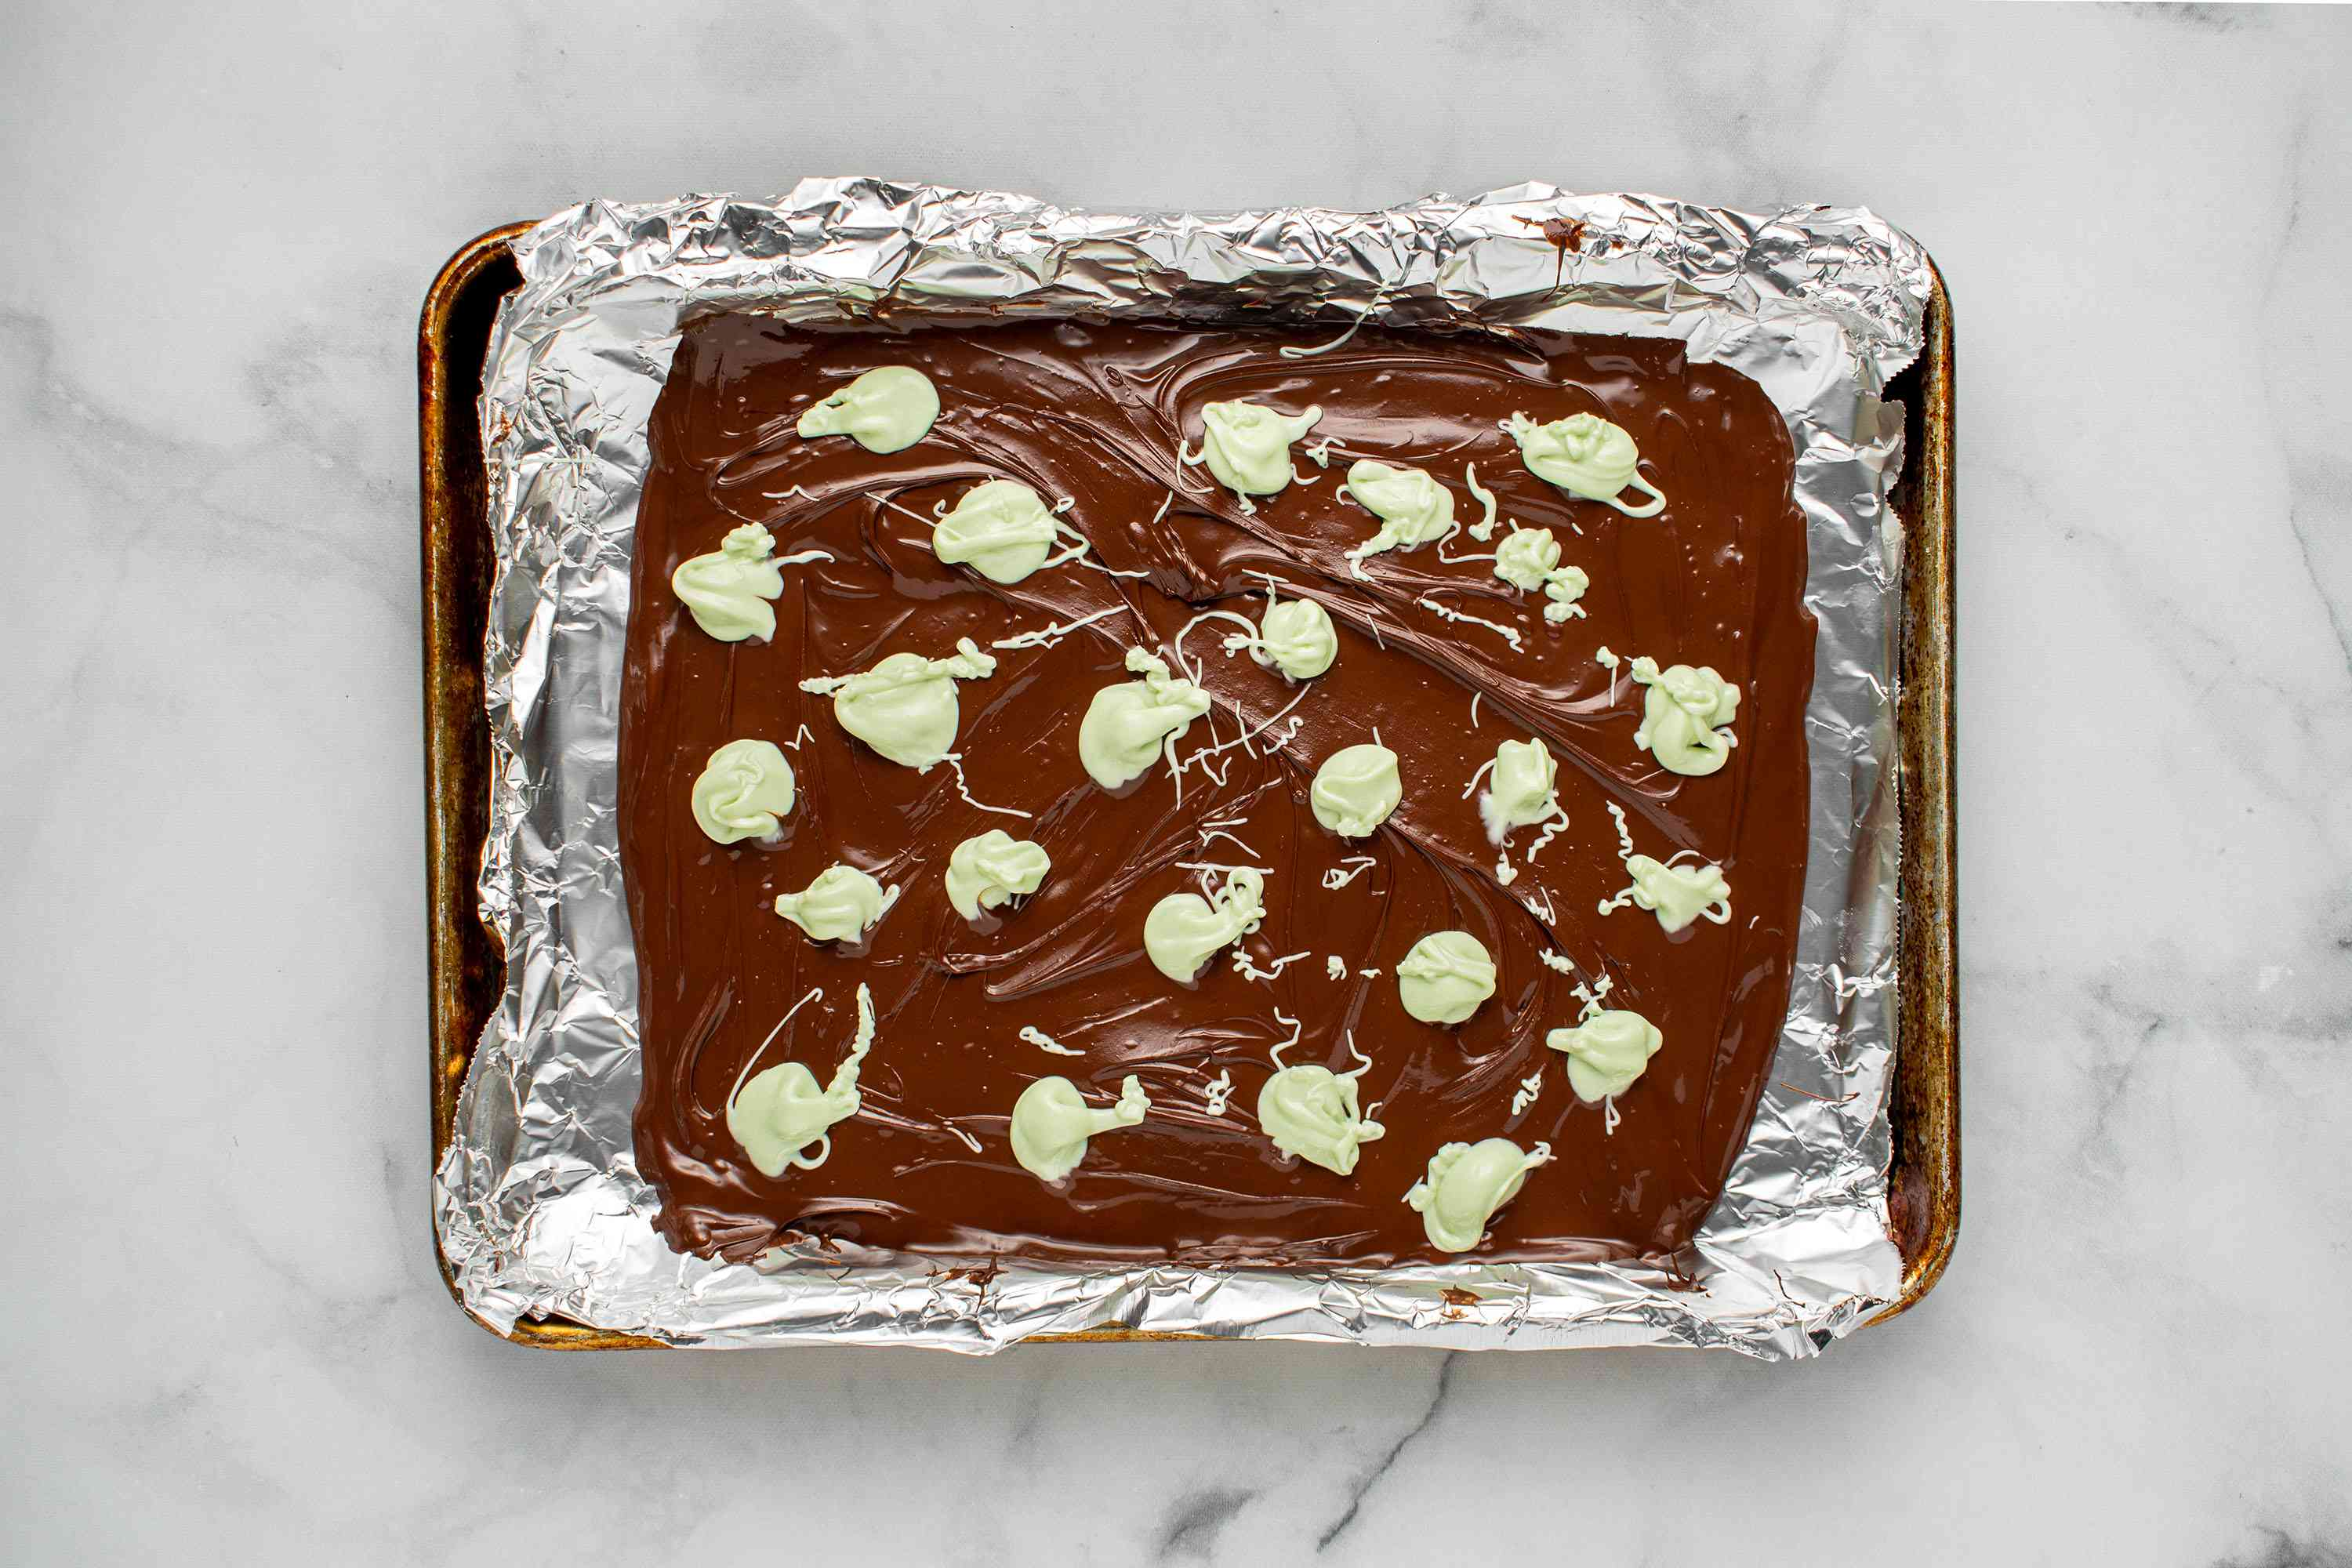 dark chocolate with white chocolate on a baking sheet